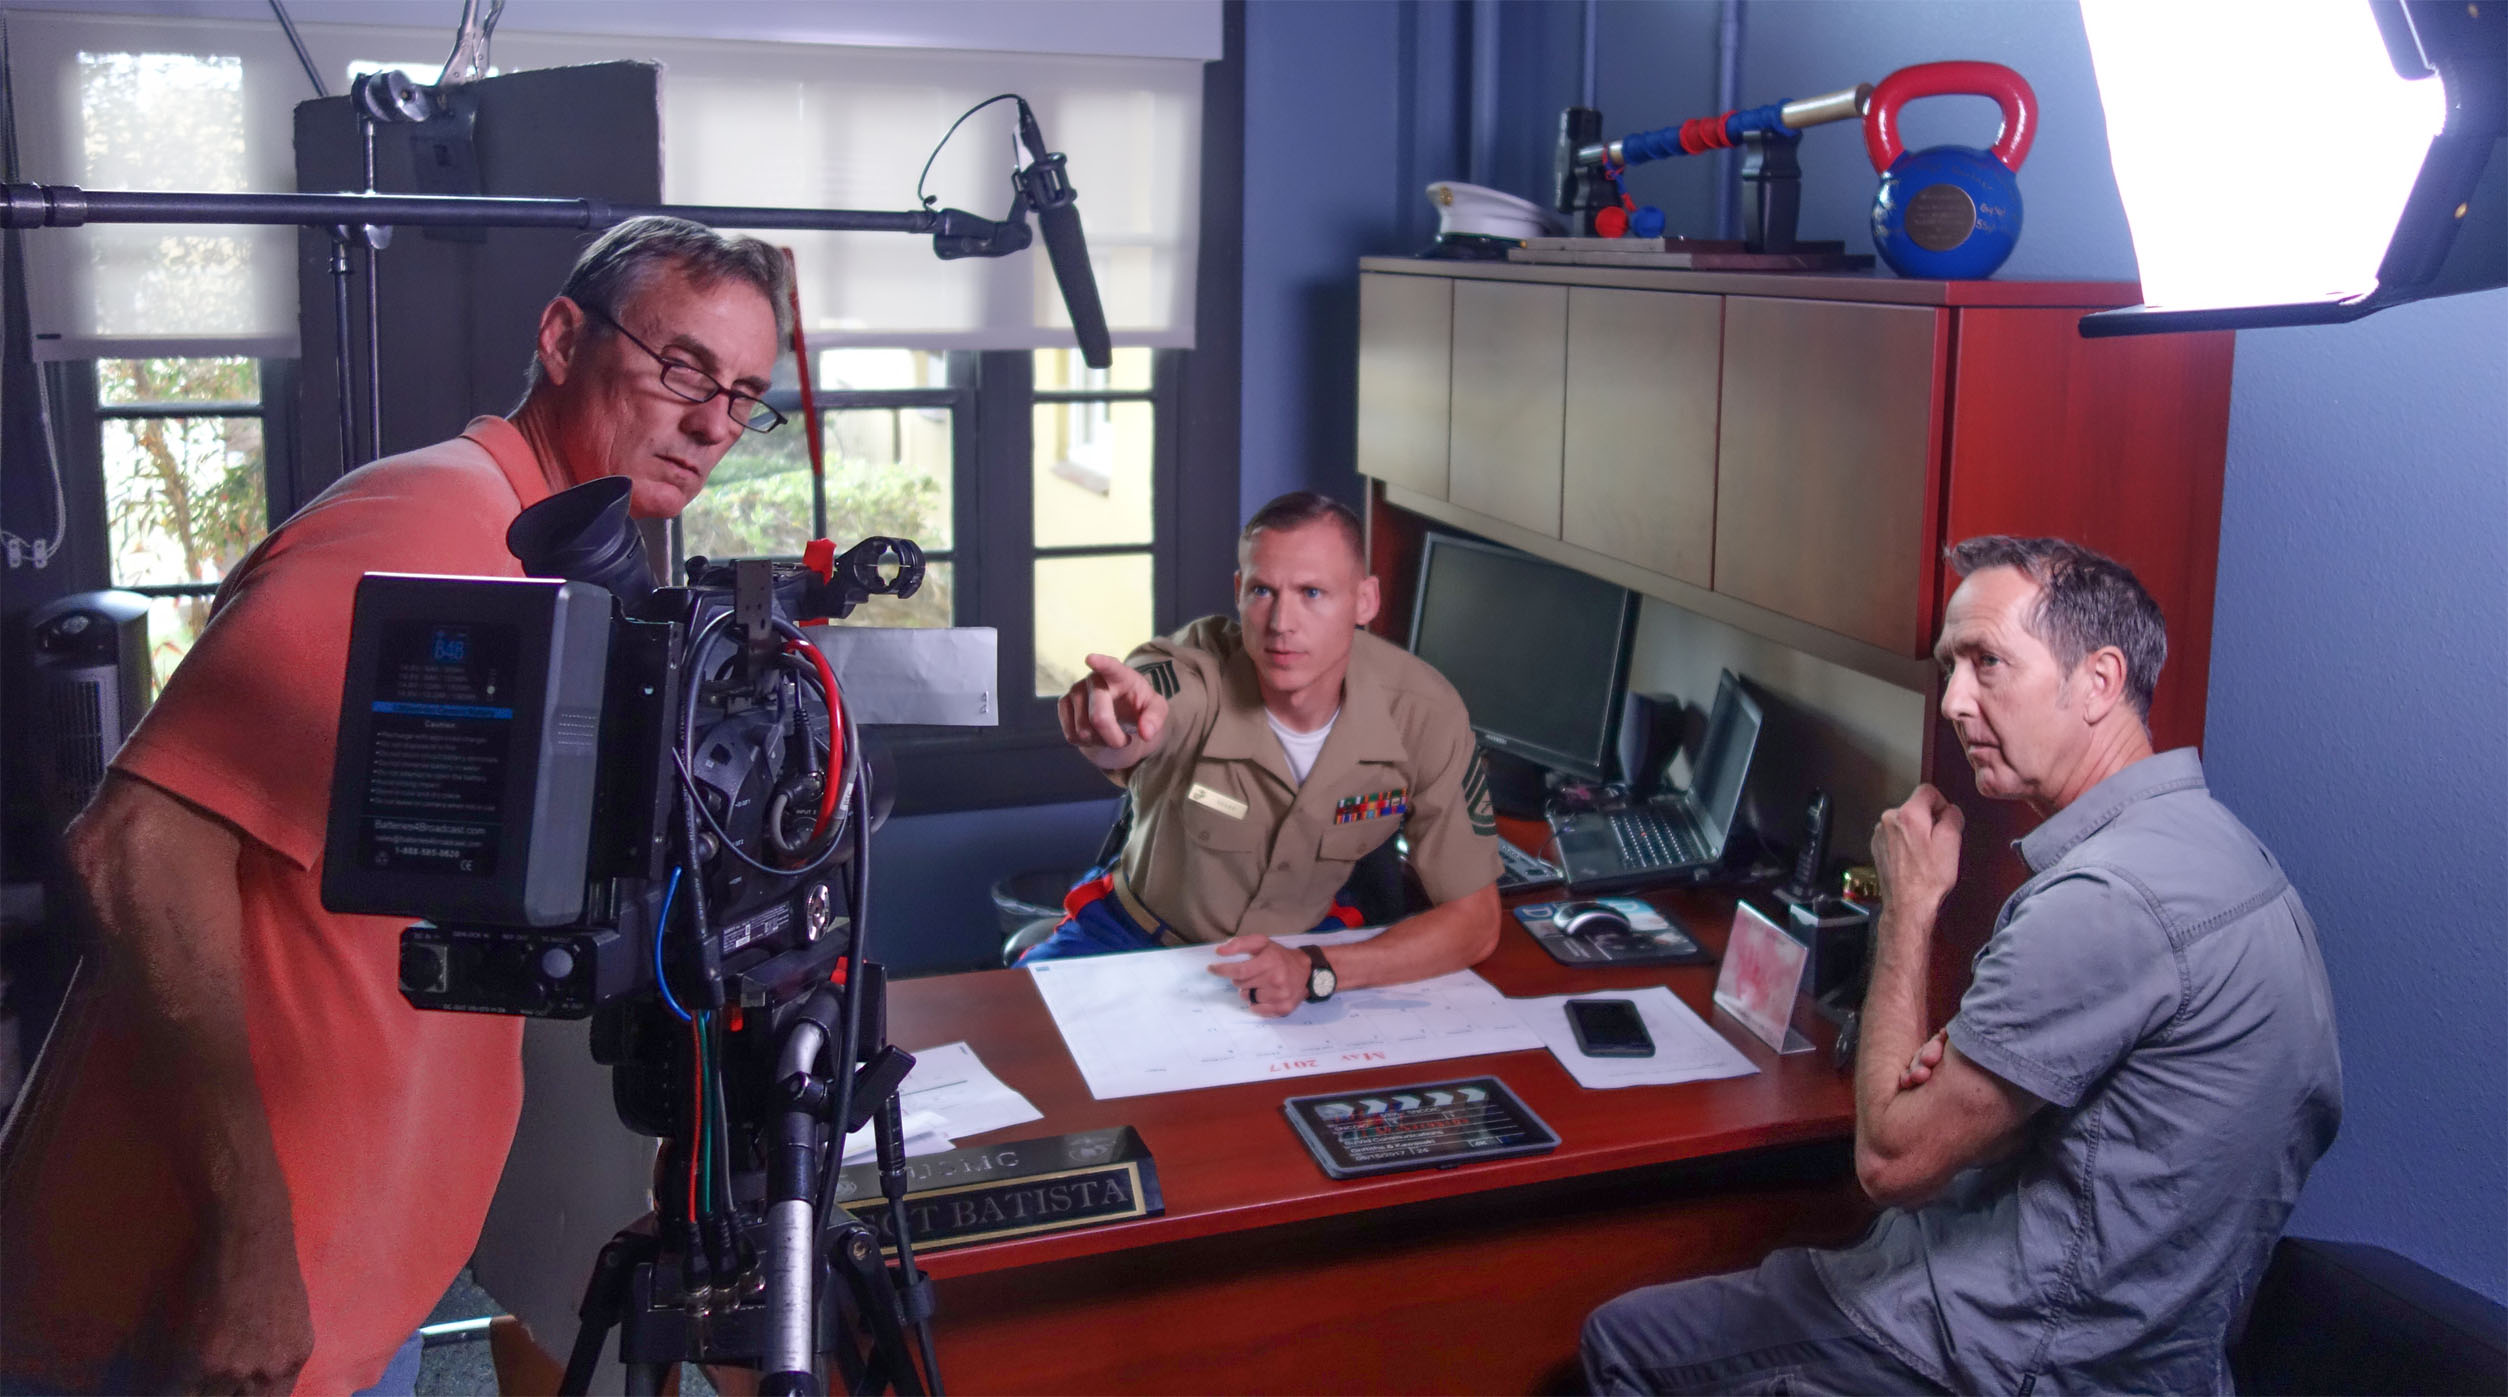 Department Of The Navy, BizVid Communications Video Production San Diego